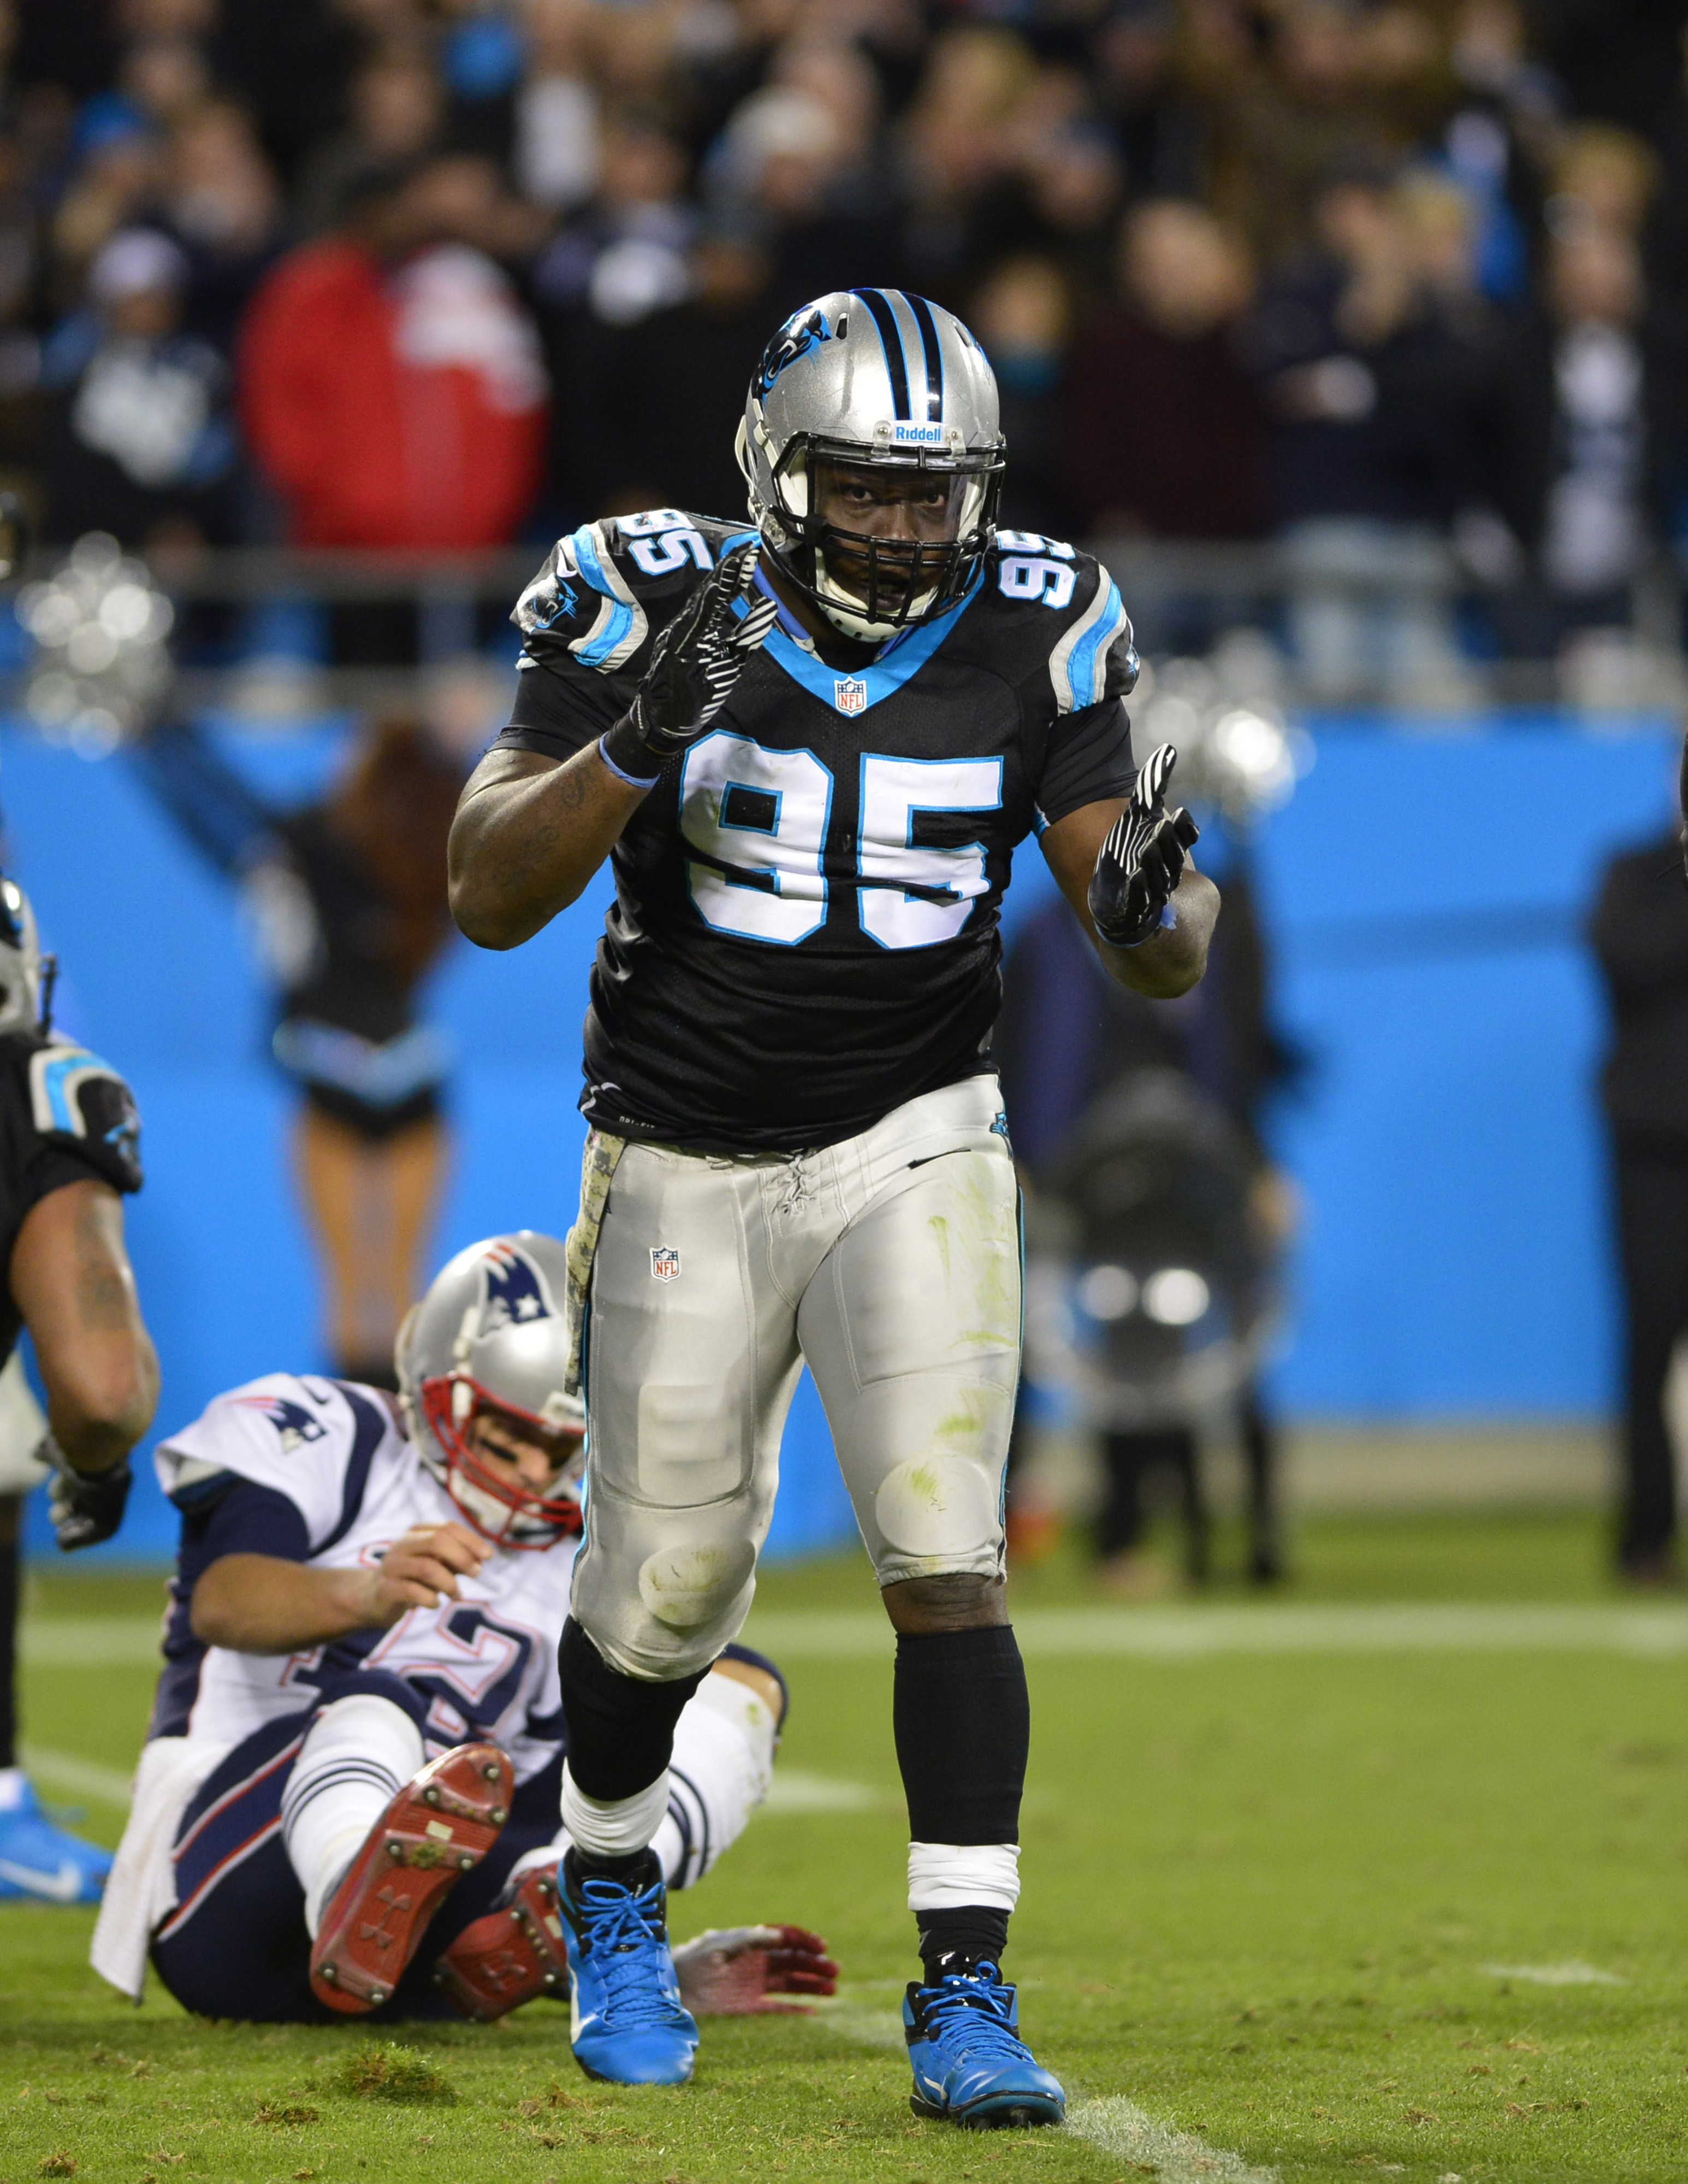 Charles Johnson injury: Panthers DE to miss game vs. Buccaneers